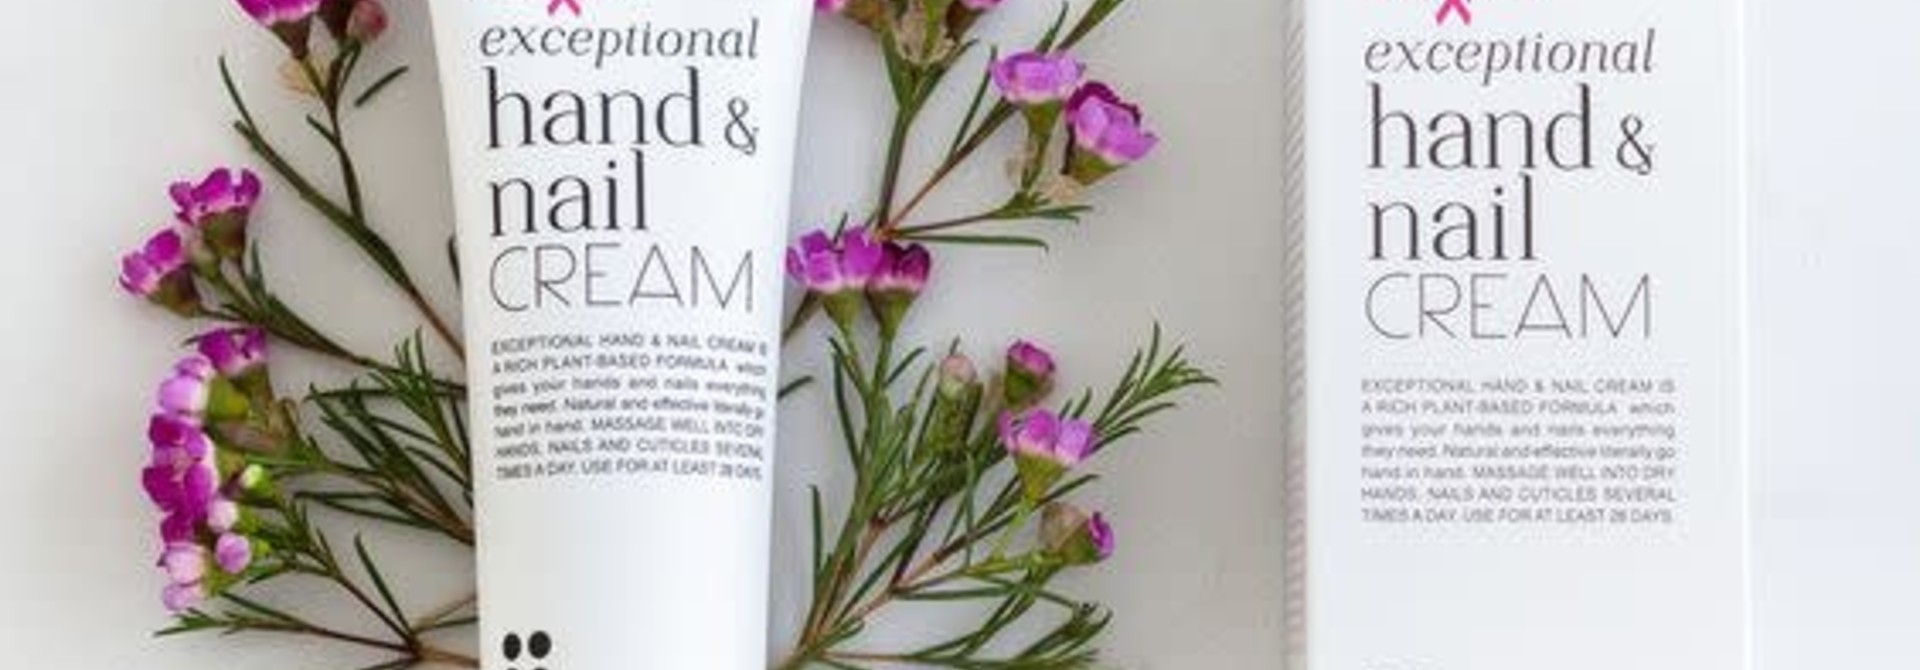 Exceptional Hand&Nail Cream Think&Pink